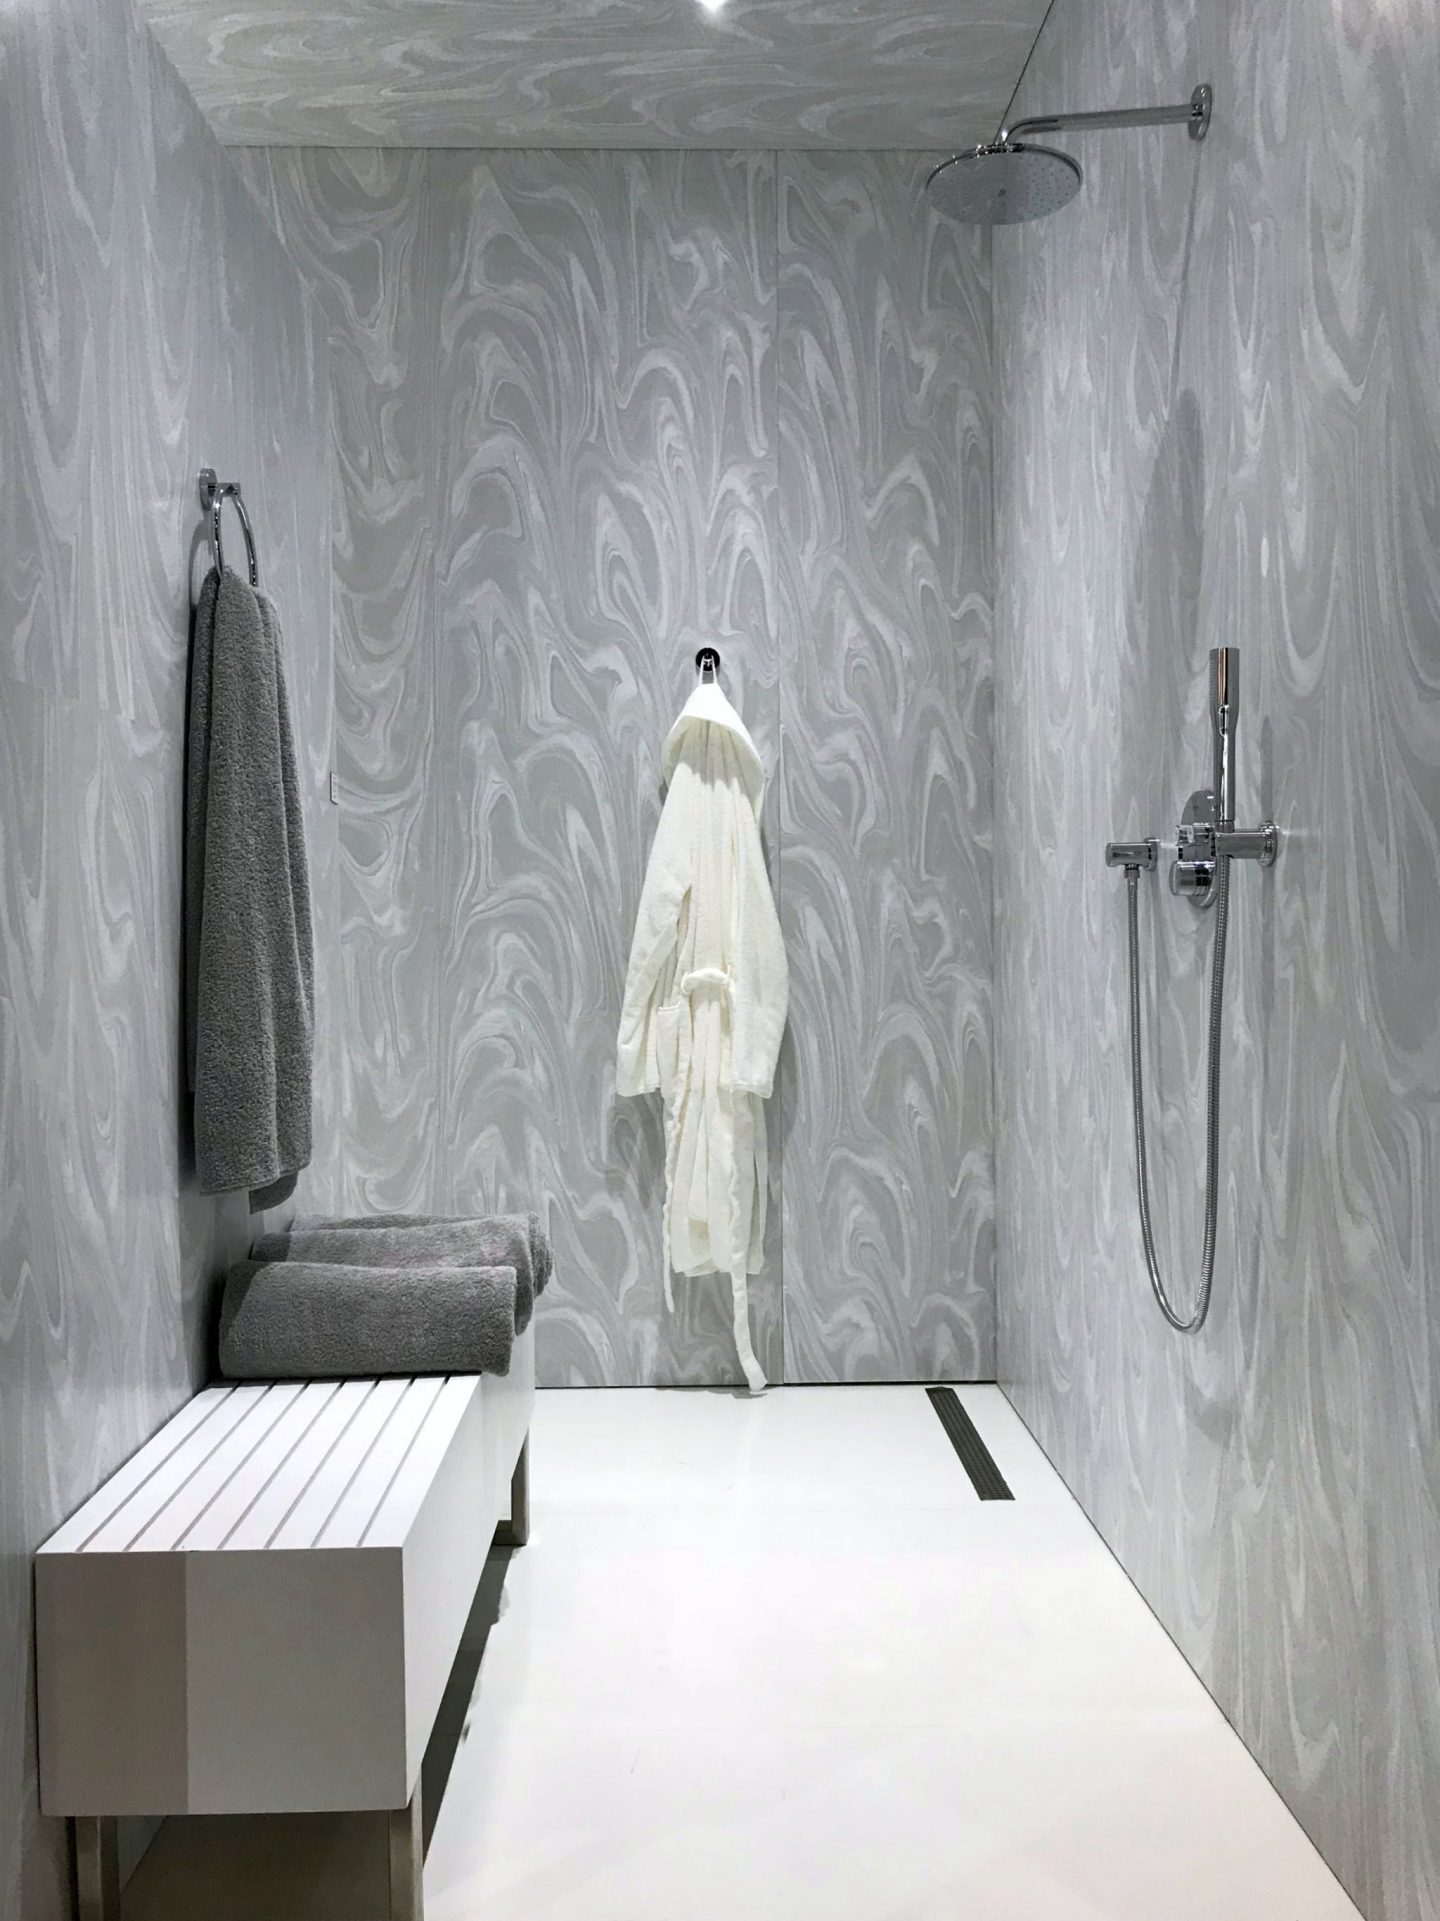 hellopeagreen, KBIS, blogtour KBIS, Kitchen and bathroom design, Grohe, luxury bathroom, Master bath, lixil